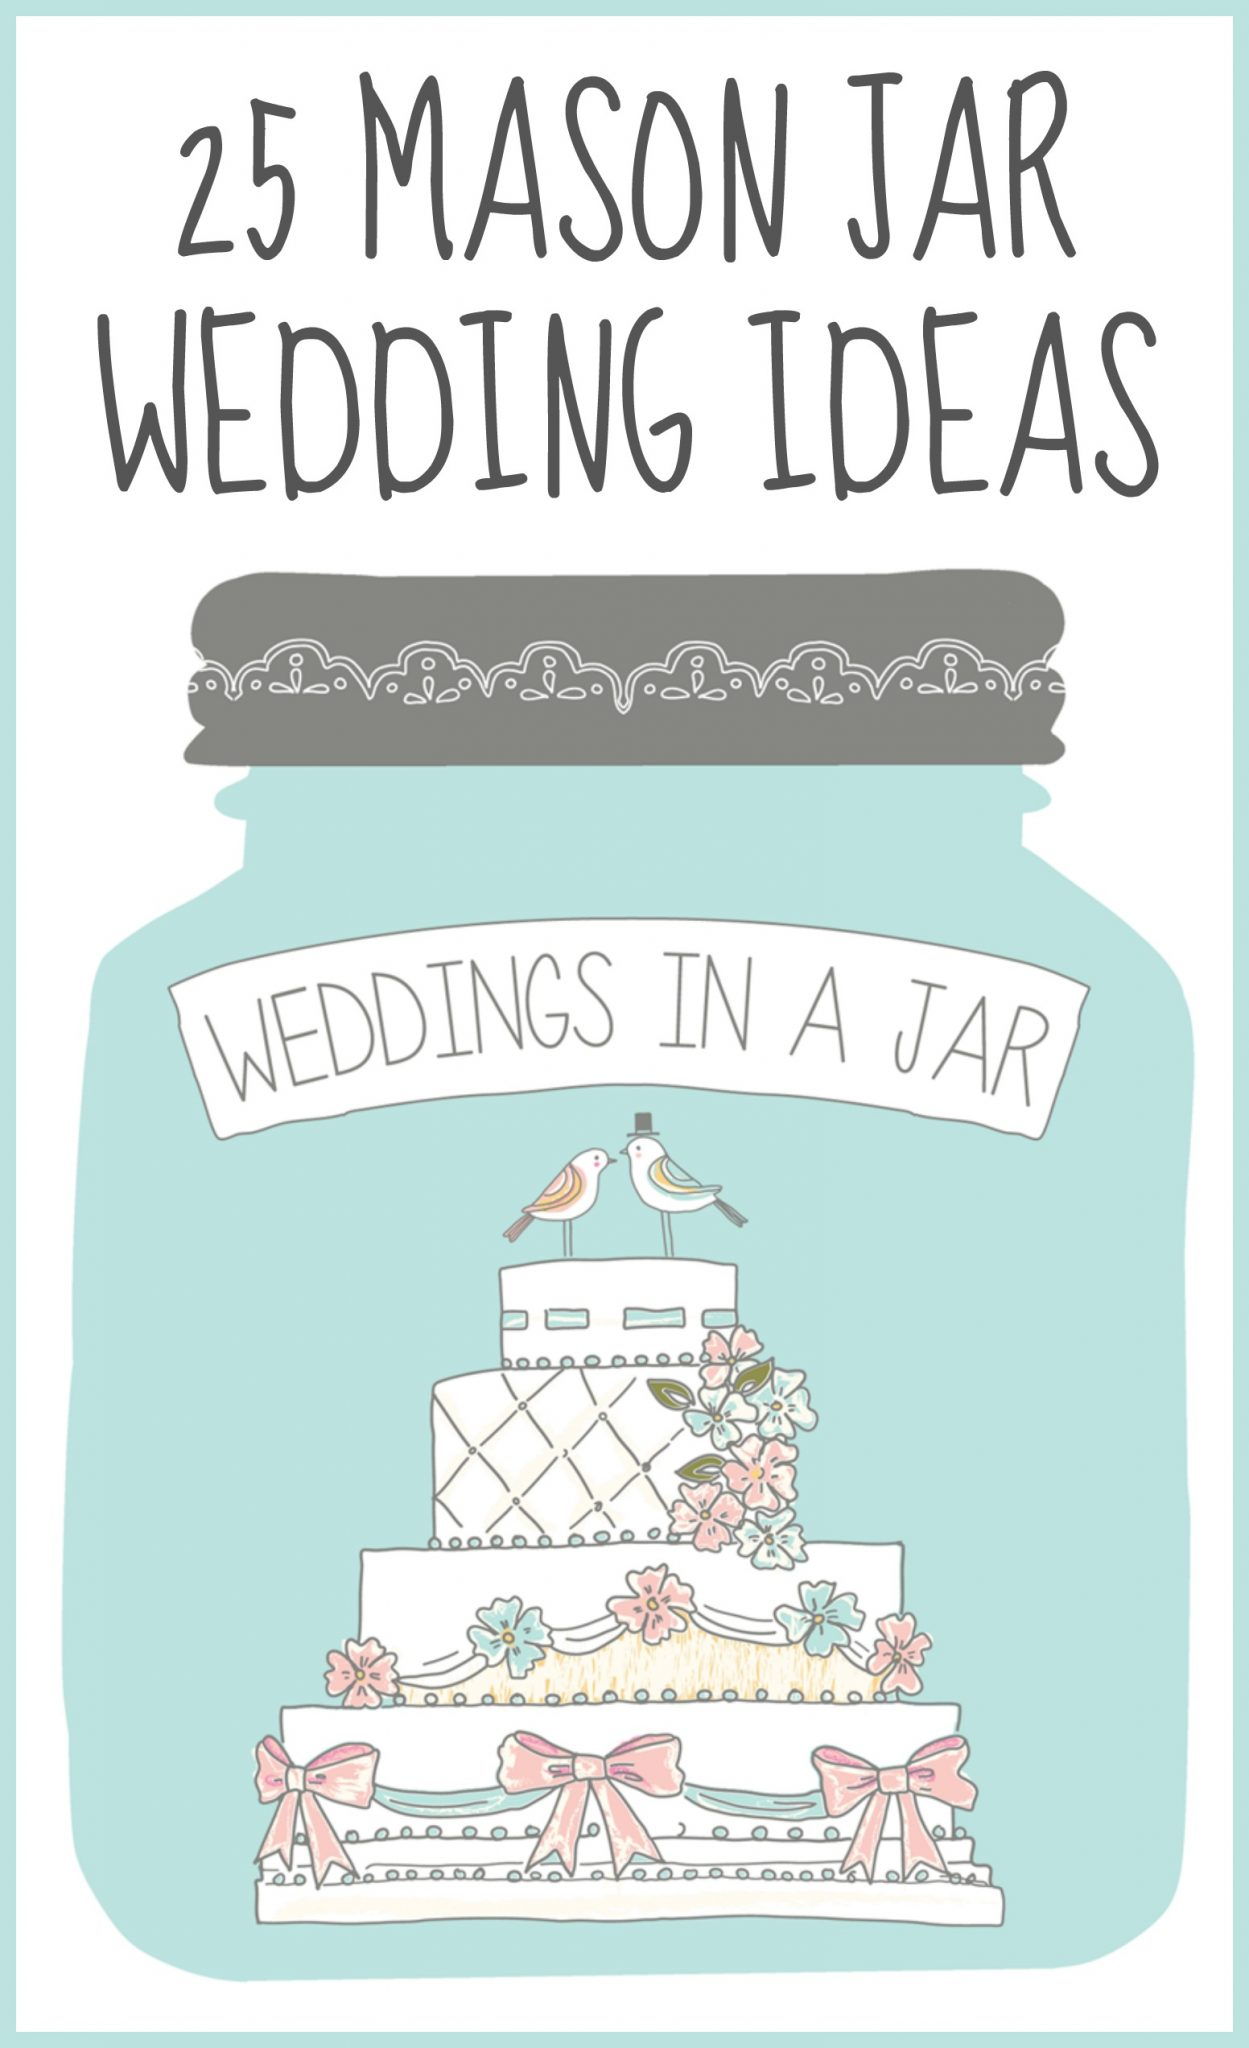 25 Mason Jar Wedding Ideas